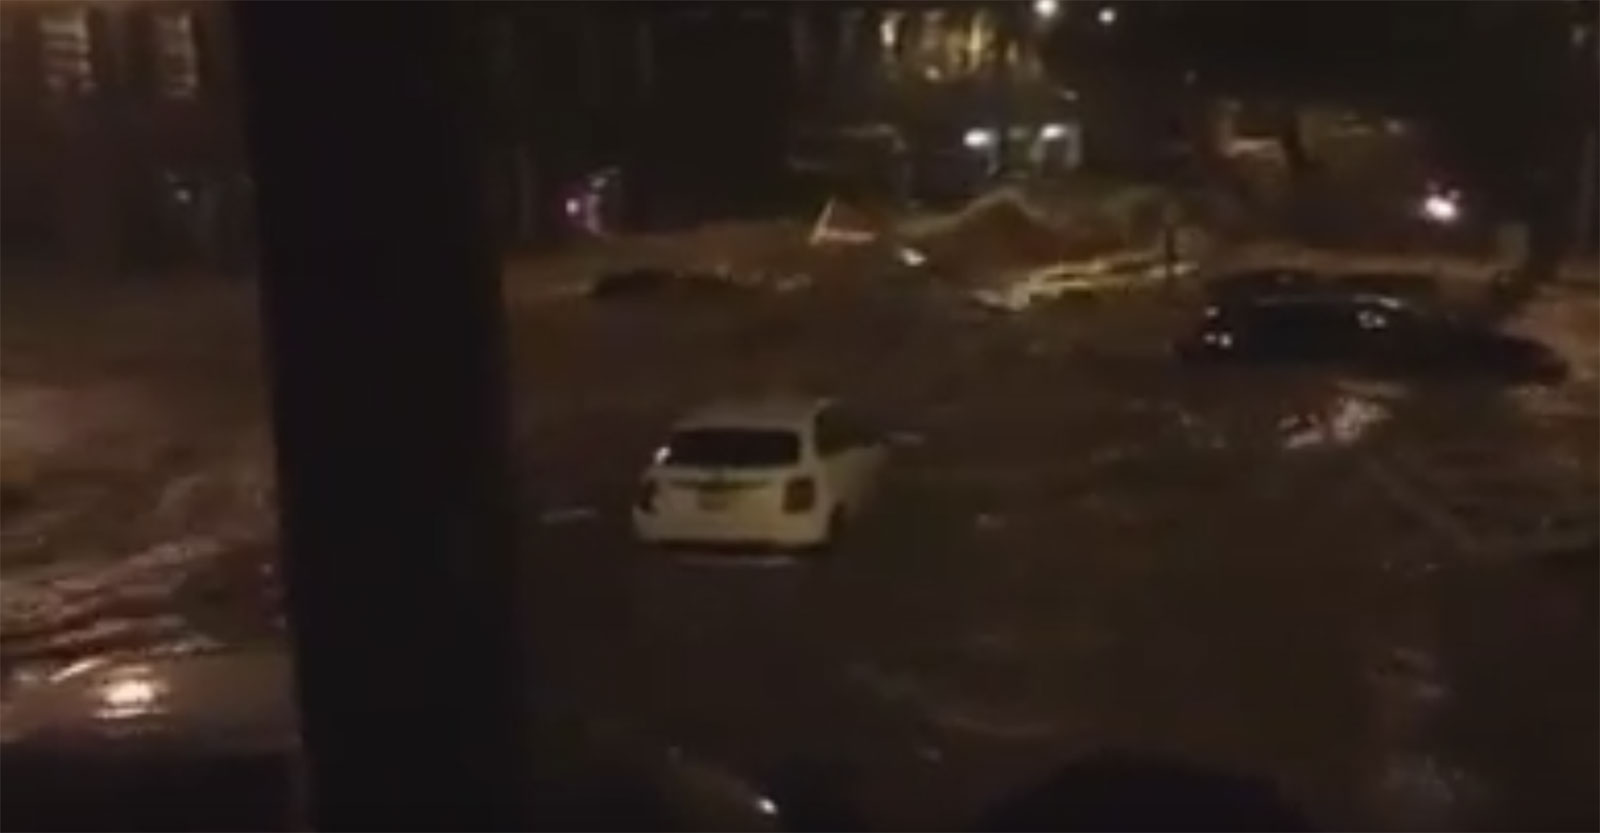 Ellicott City experienced major flash flooding that started around 9:30 p.m. Saturday, July 30, 2016. (Courtesy YouTube)